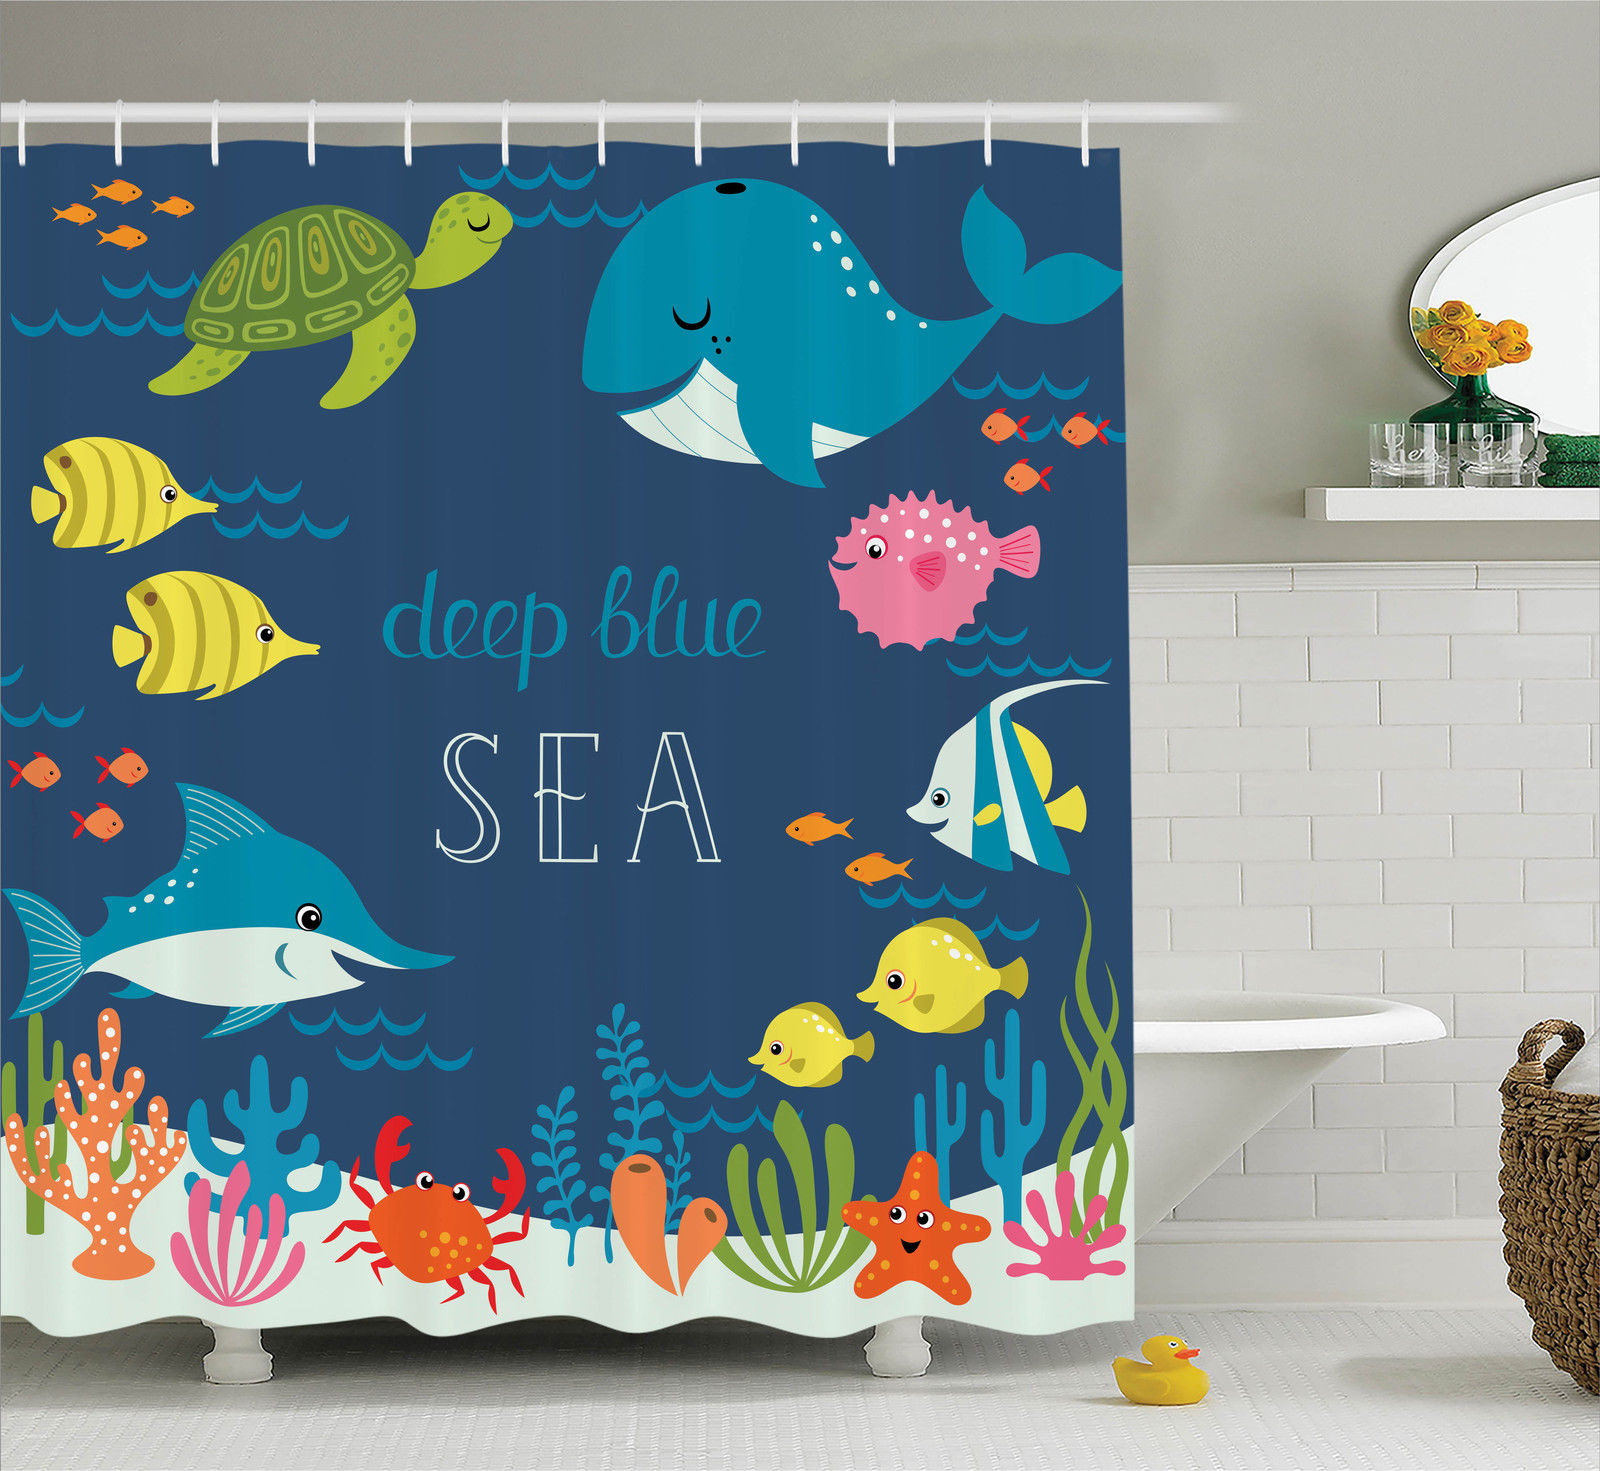 Cartoon Decor Shower Curtain Set, Artsy Underwater Graphic With Algaes  Coral Reefs Turtles Sword Fishes